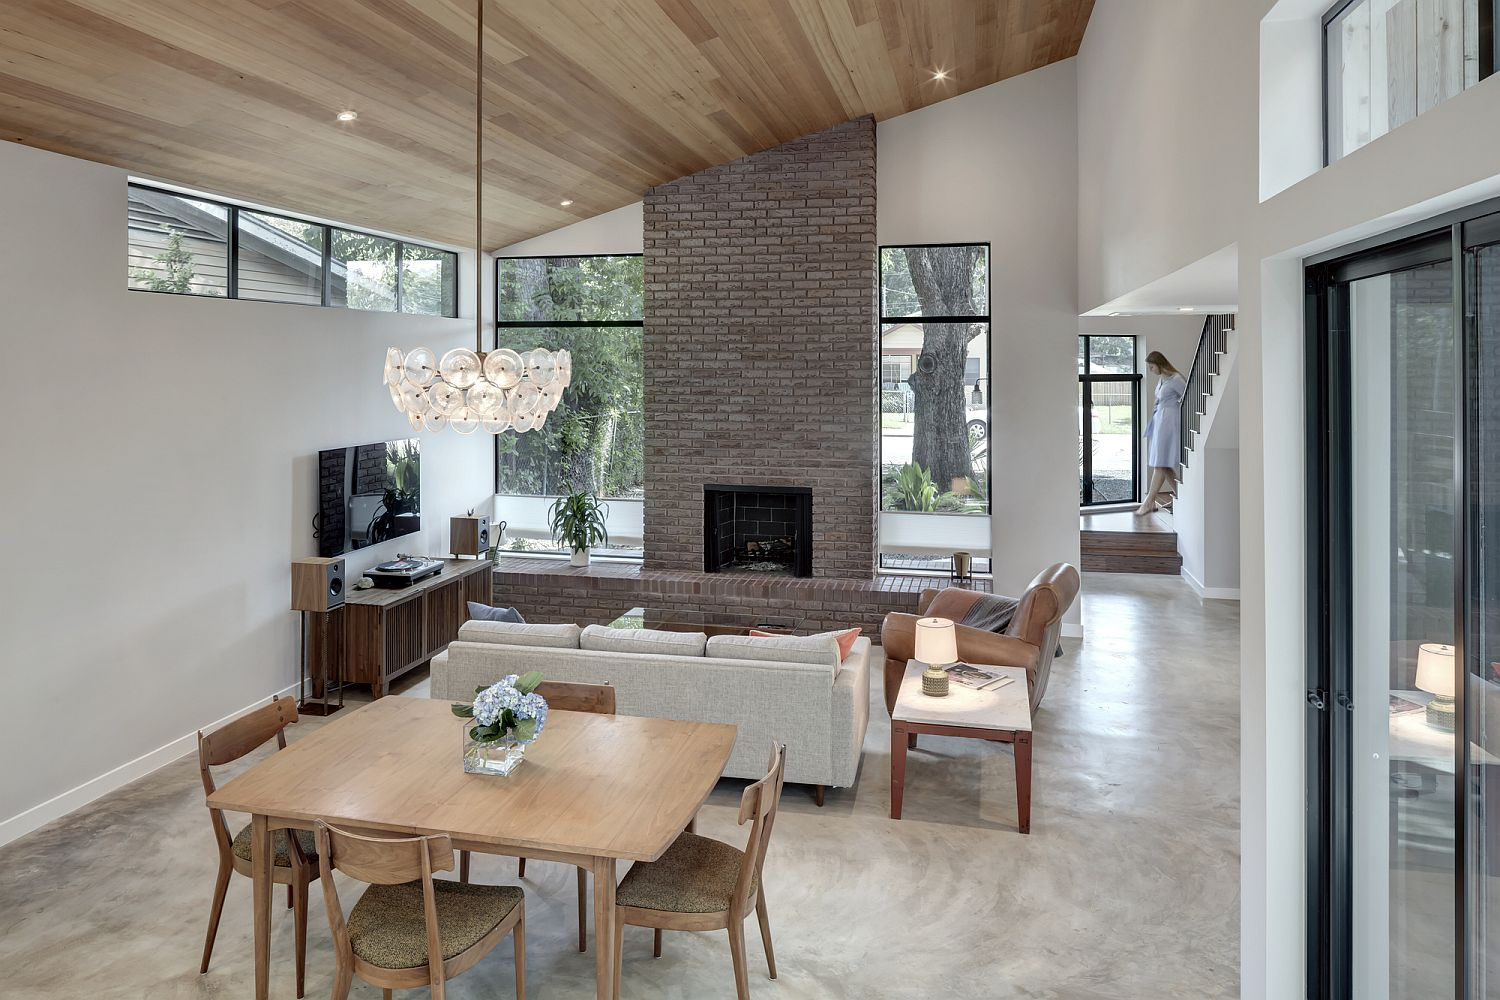 Open plan living area with lovely fireplace and gable roof